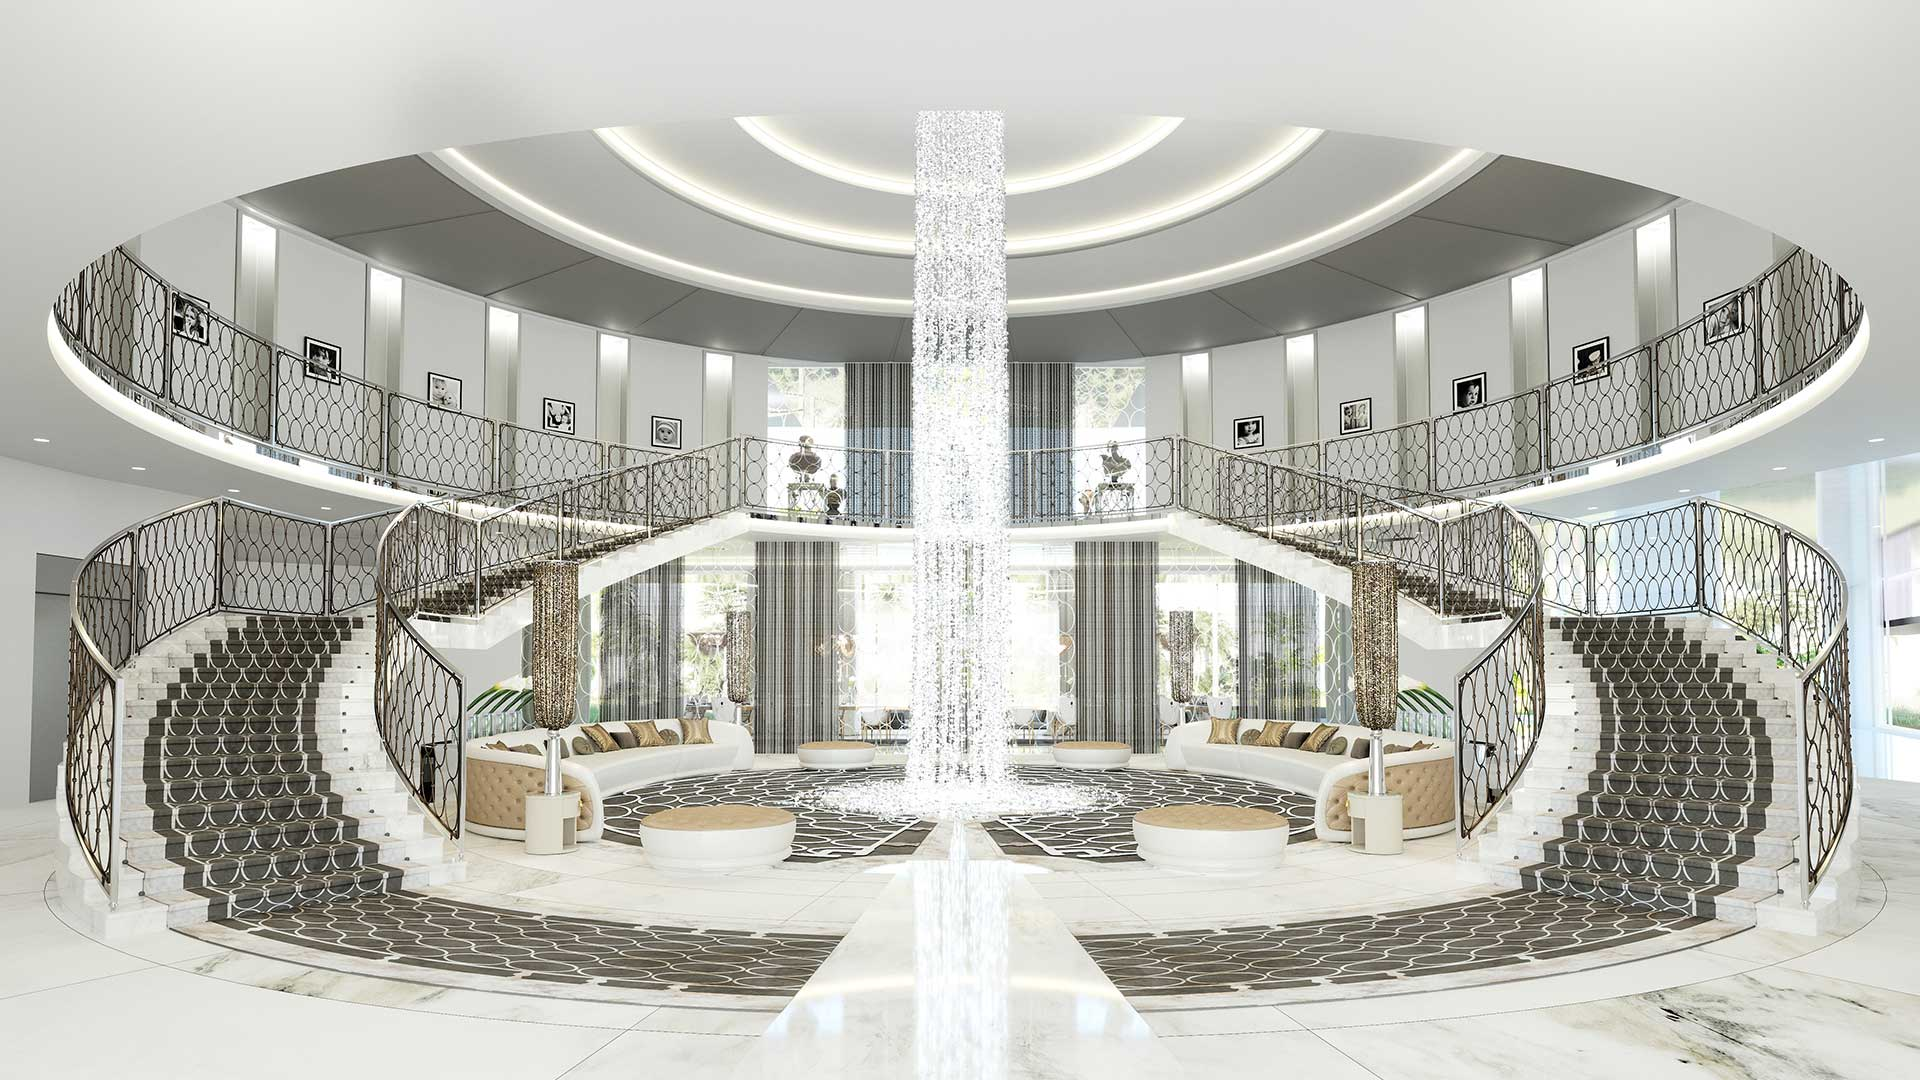 Creative studio producing 3D renderings : ultra luxurious villa entrance